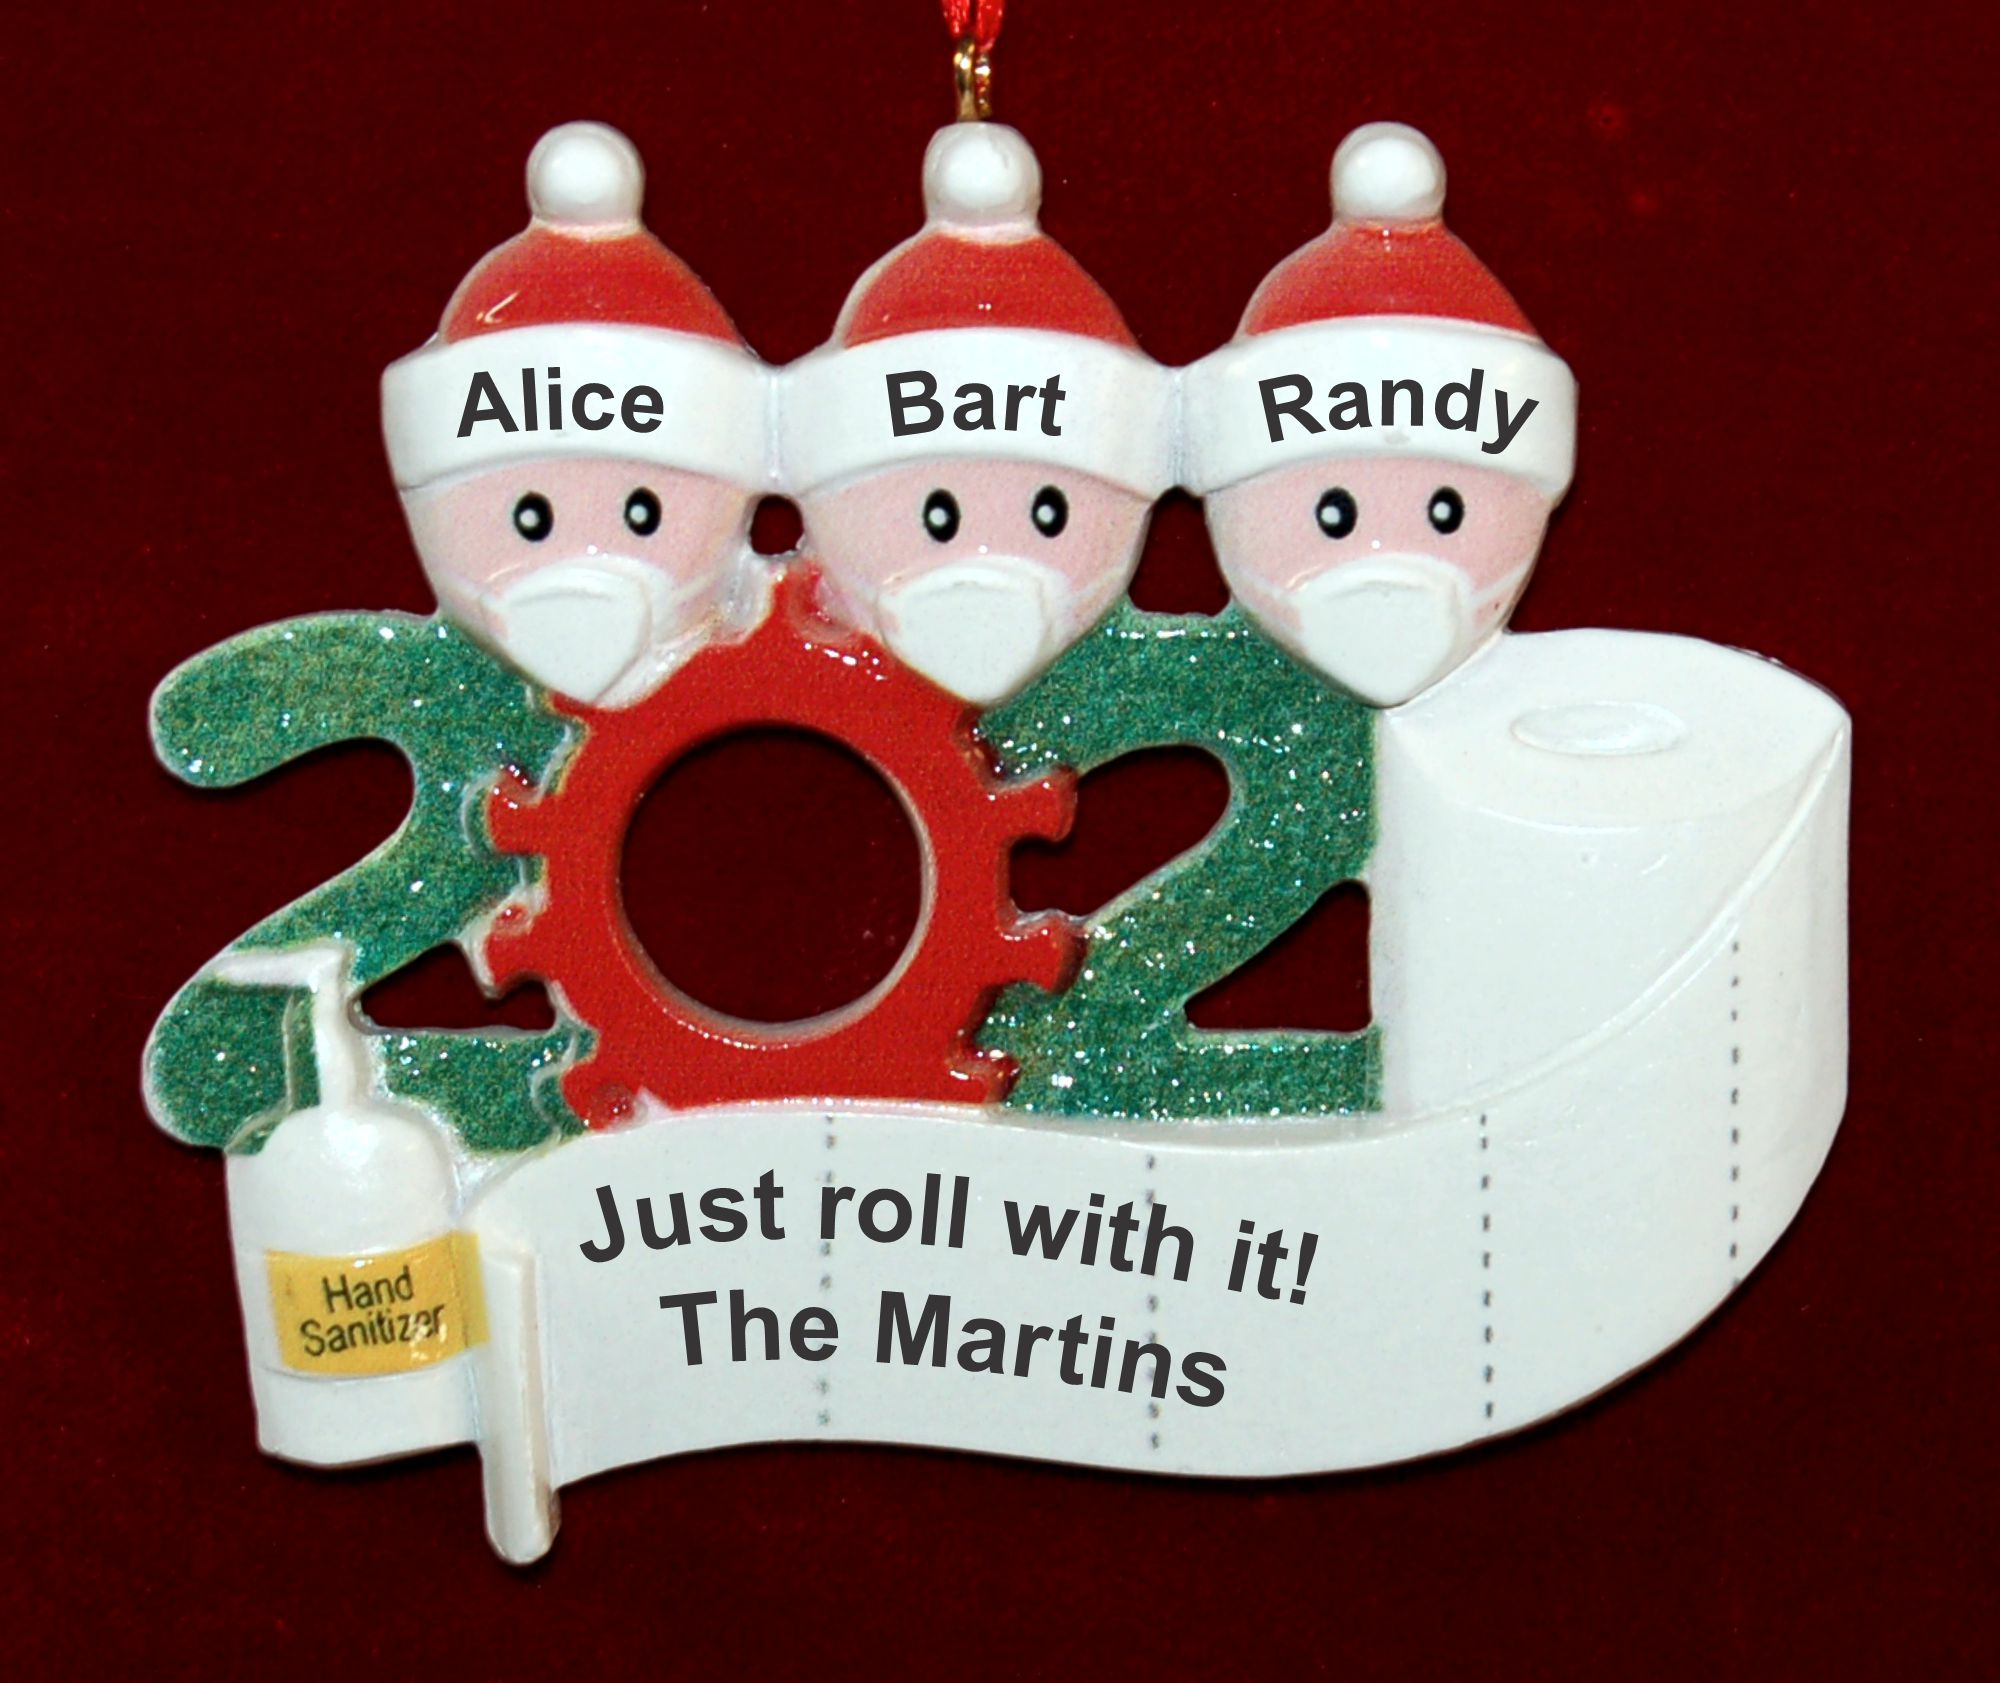 Personalized COVID19 Christmas Ornament for 3 Personalized FREE by Russell Rhodes